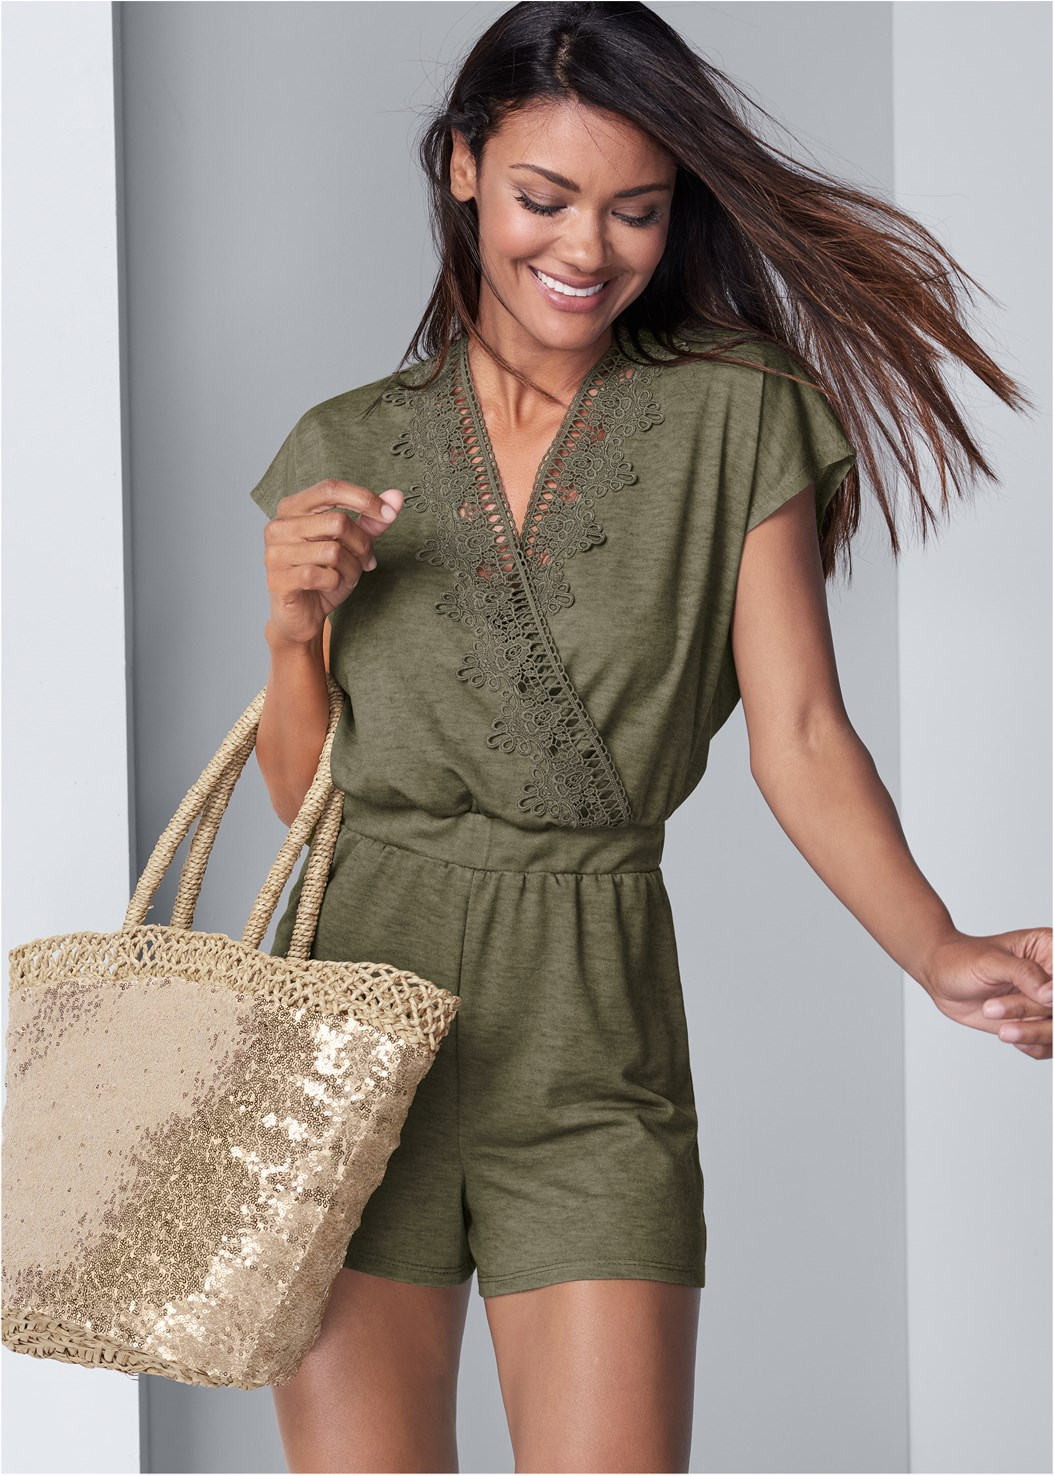 Lace Detail Lounge Romper,Push Up Bra Buy 2 For $40,Embellished Espadrilles,Sequin And Straw Tote